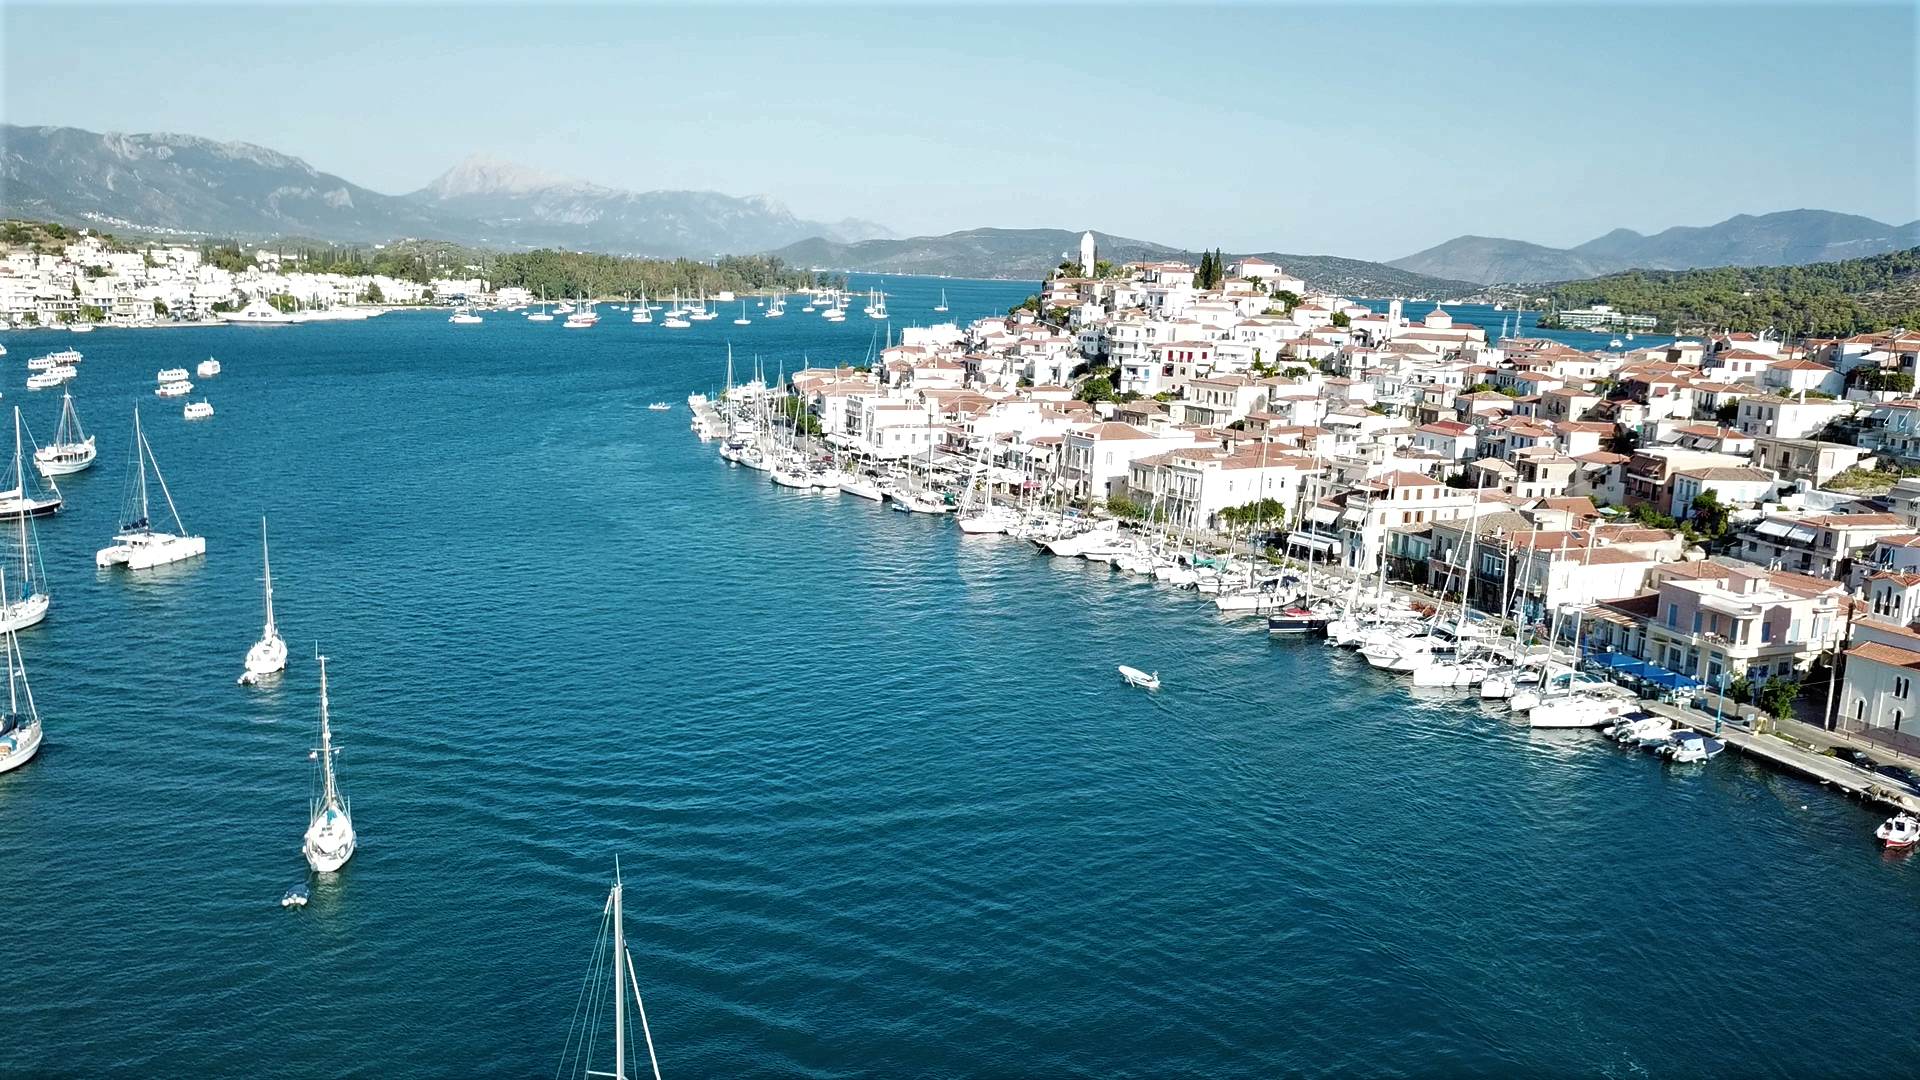 The port of Poros